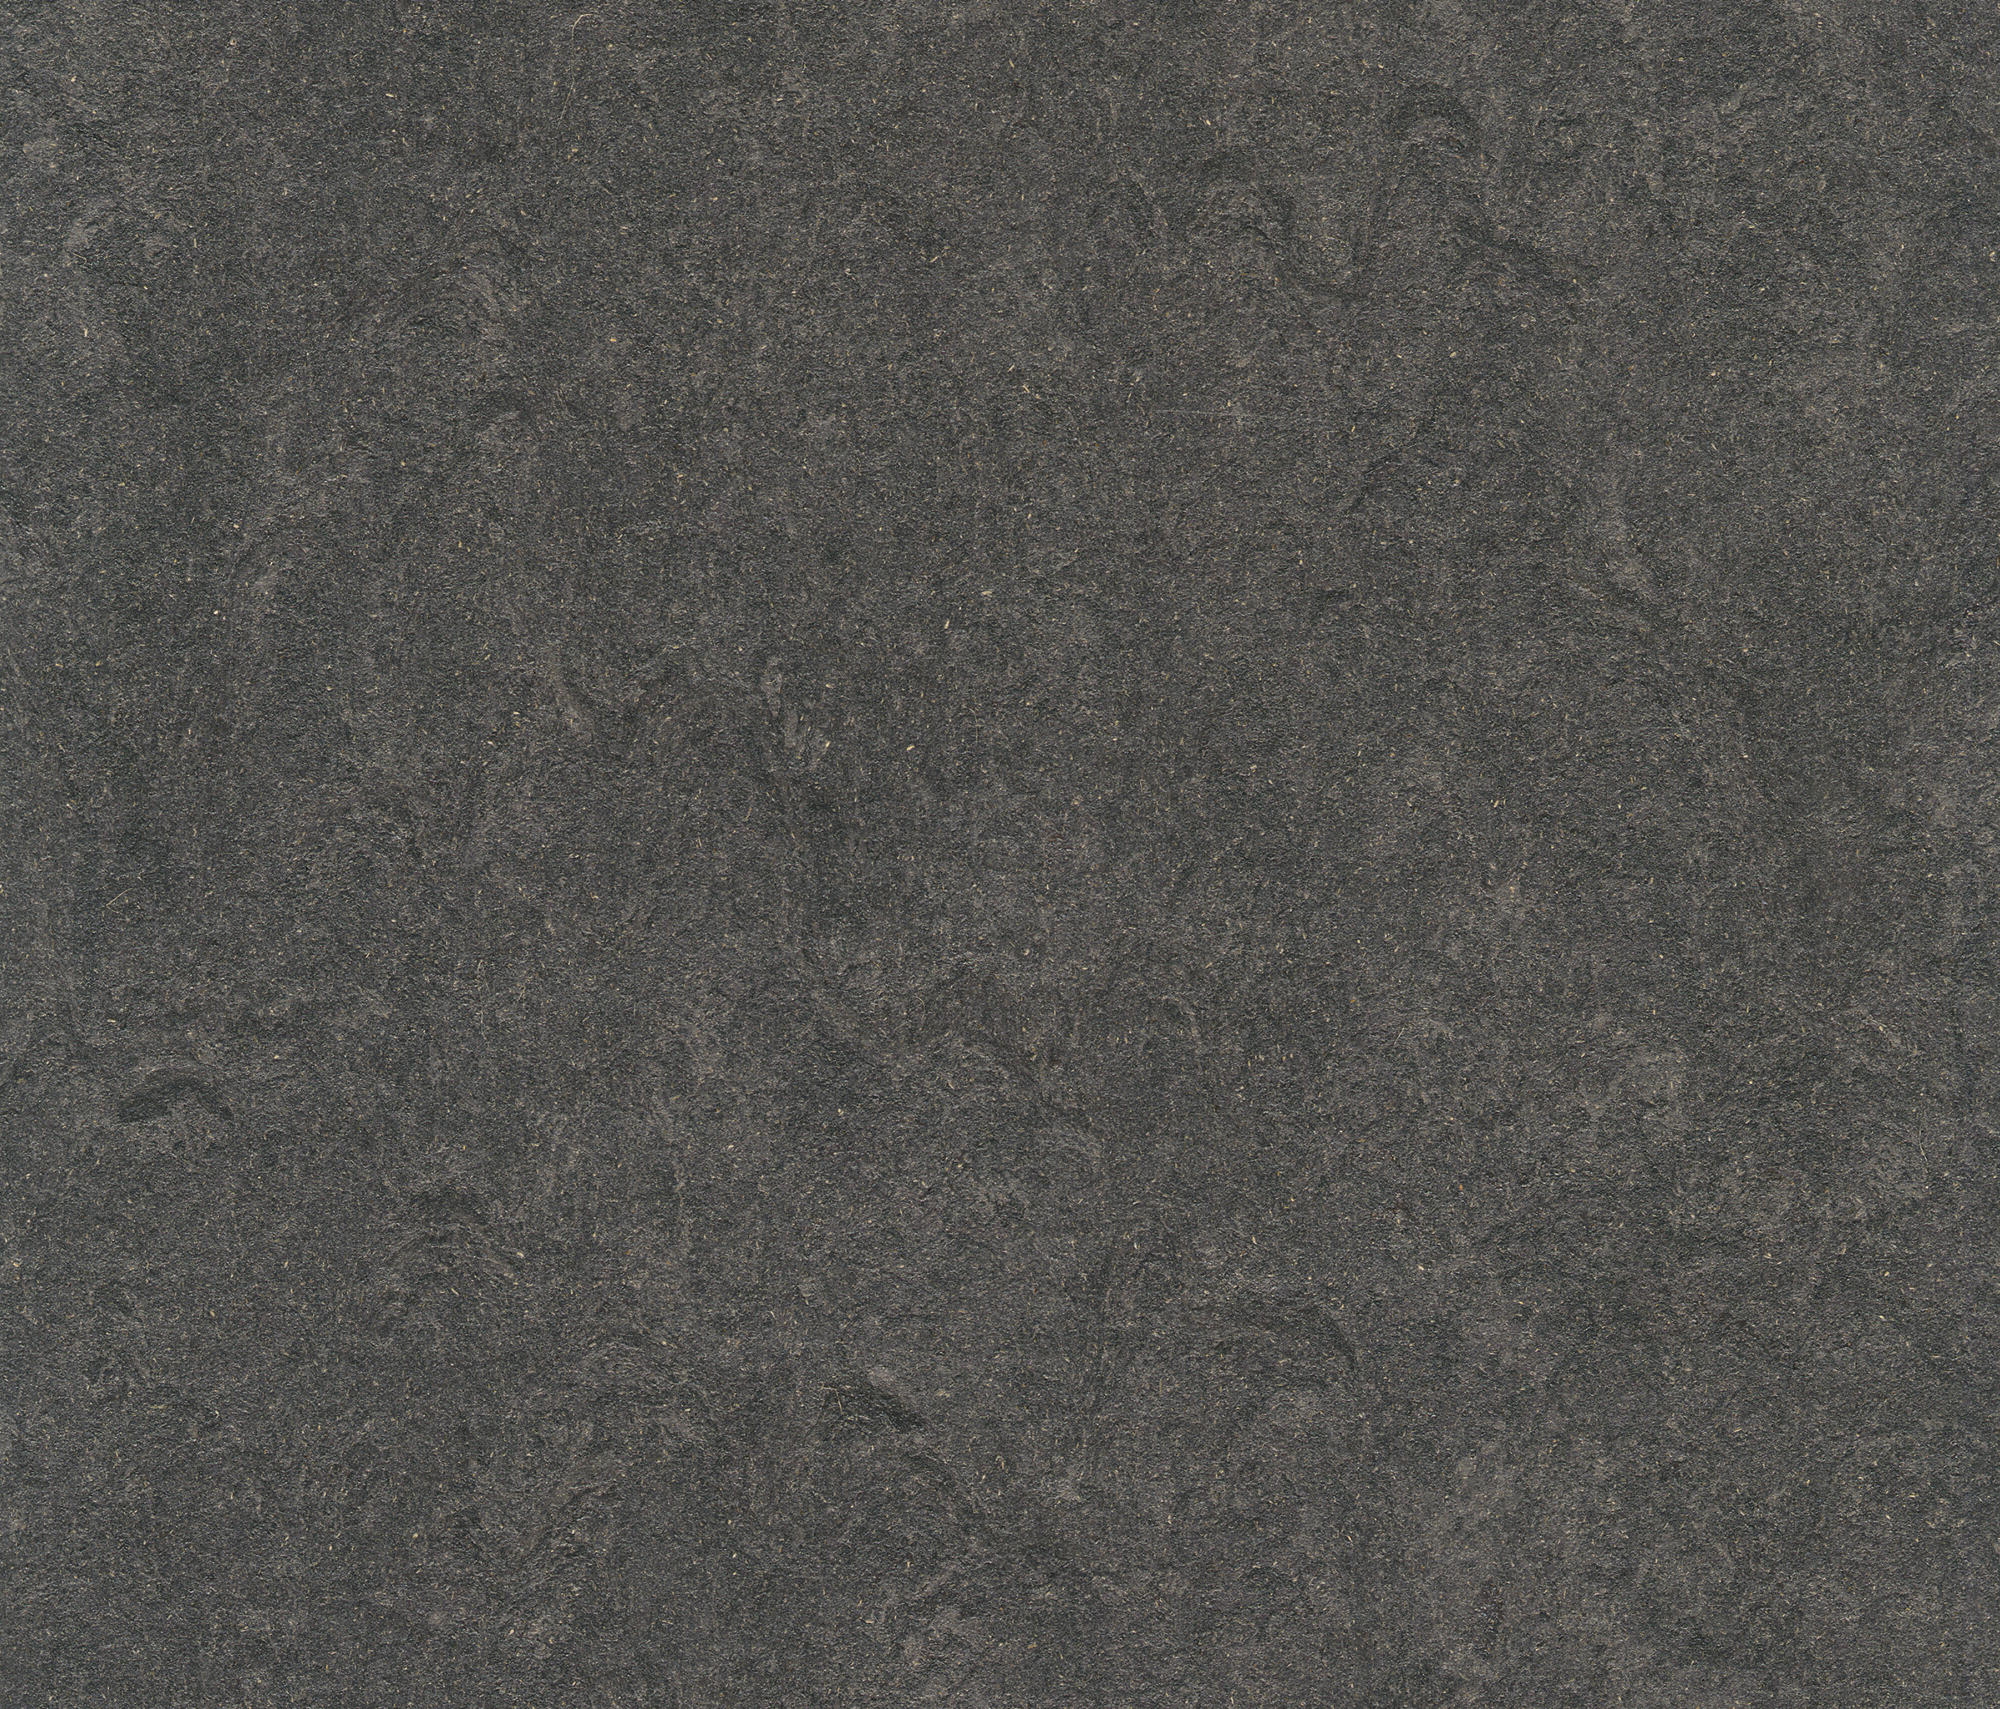 marmorette lpx 121 160 linoleum flooring from armstrong. Black Bedroom Furniture Sets. Home Design Ideas